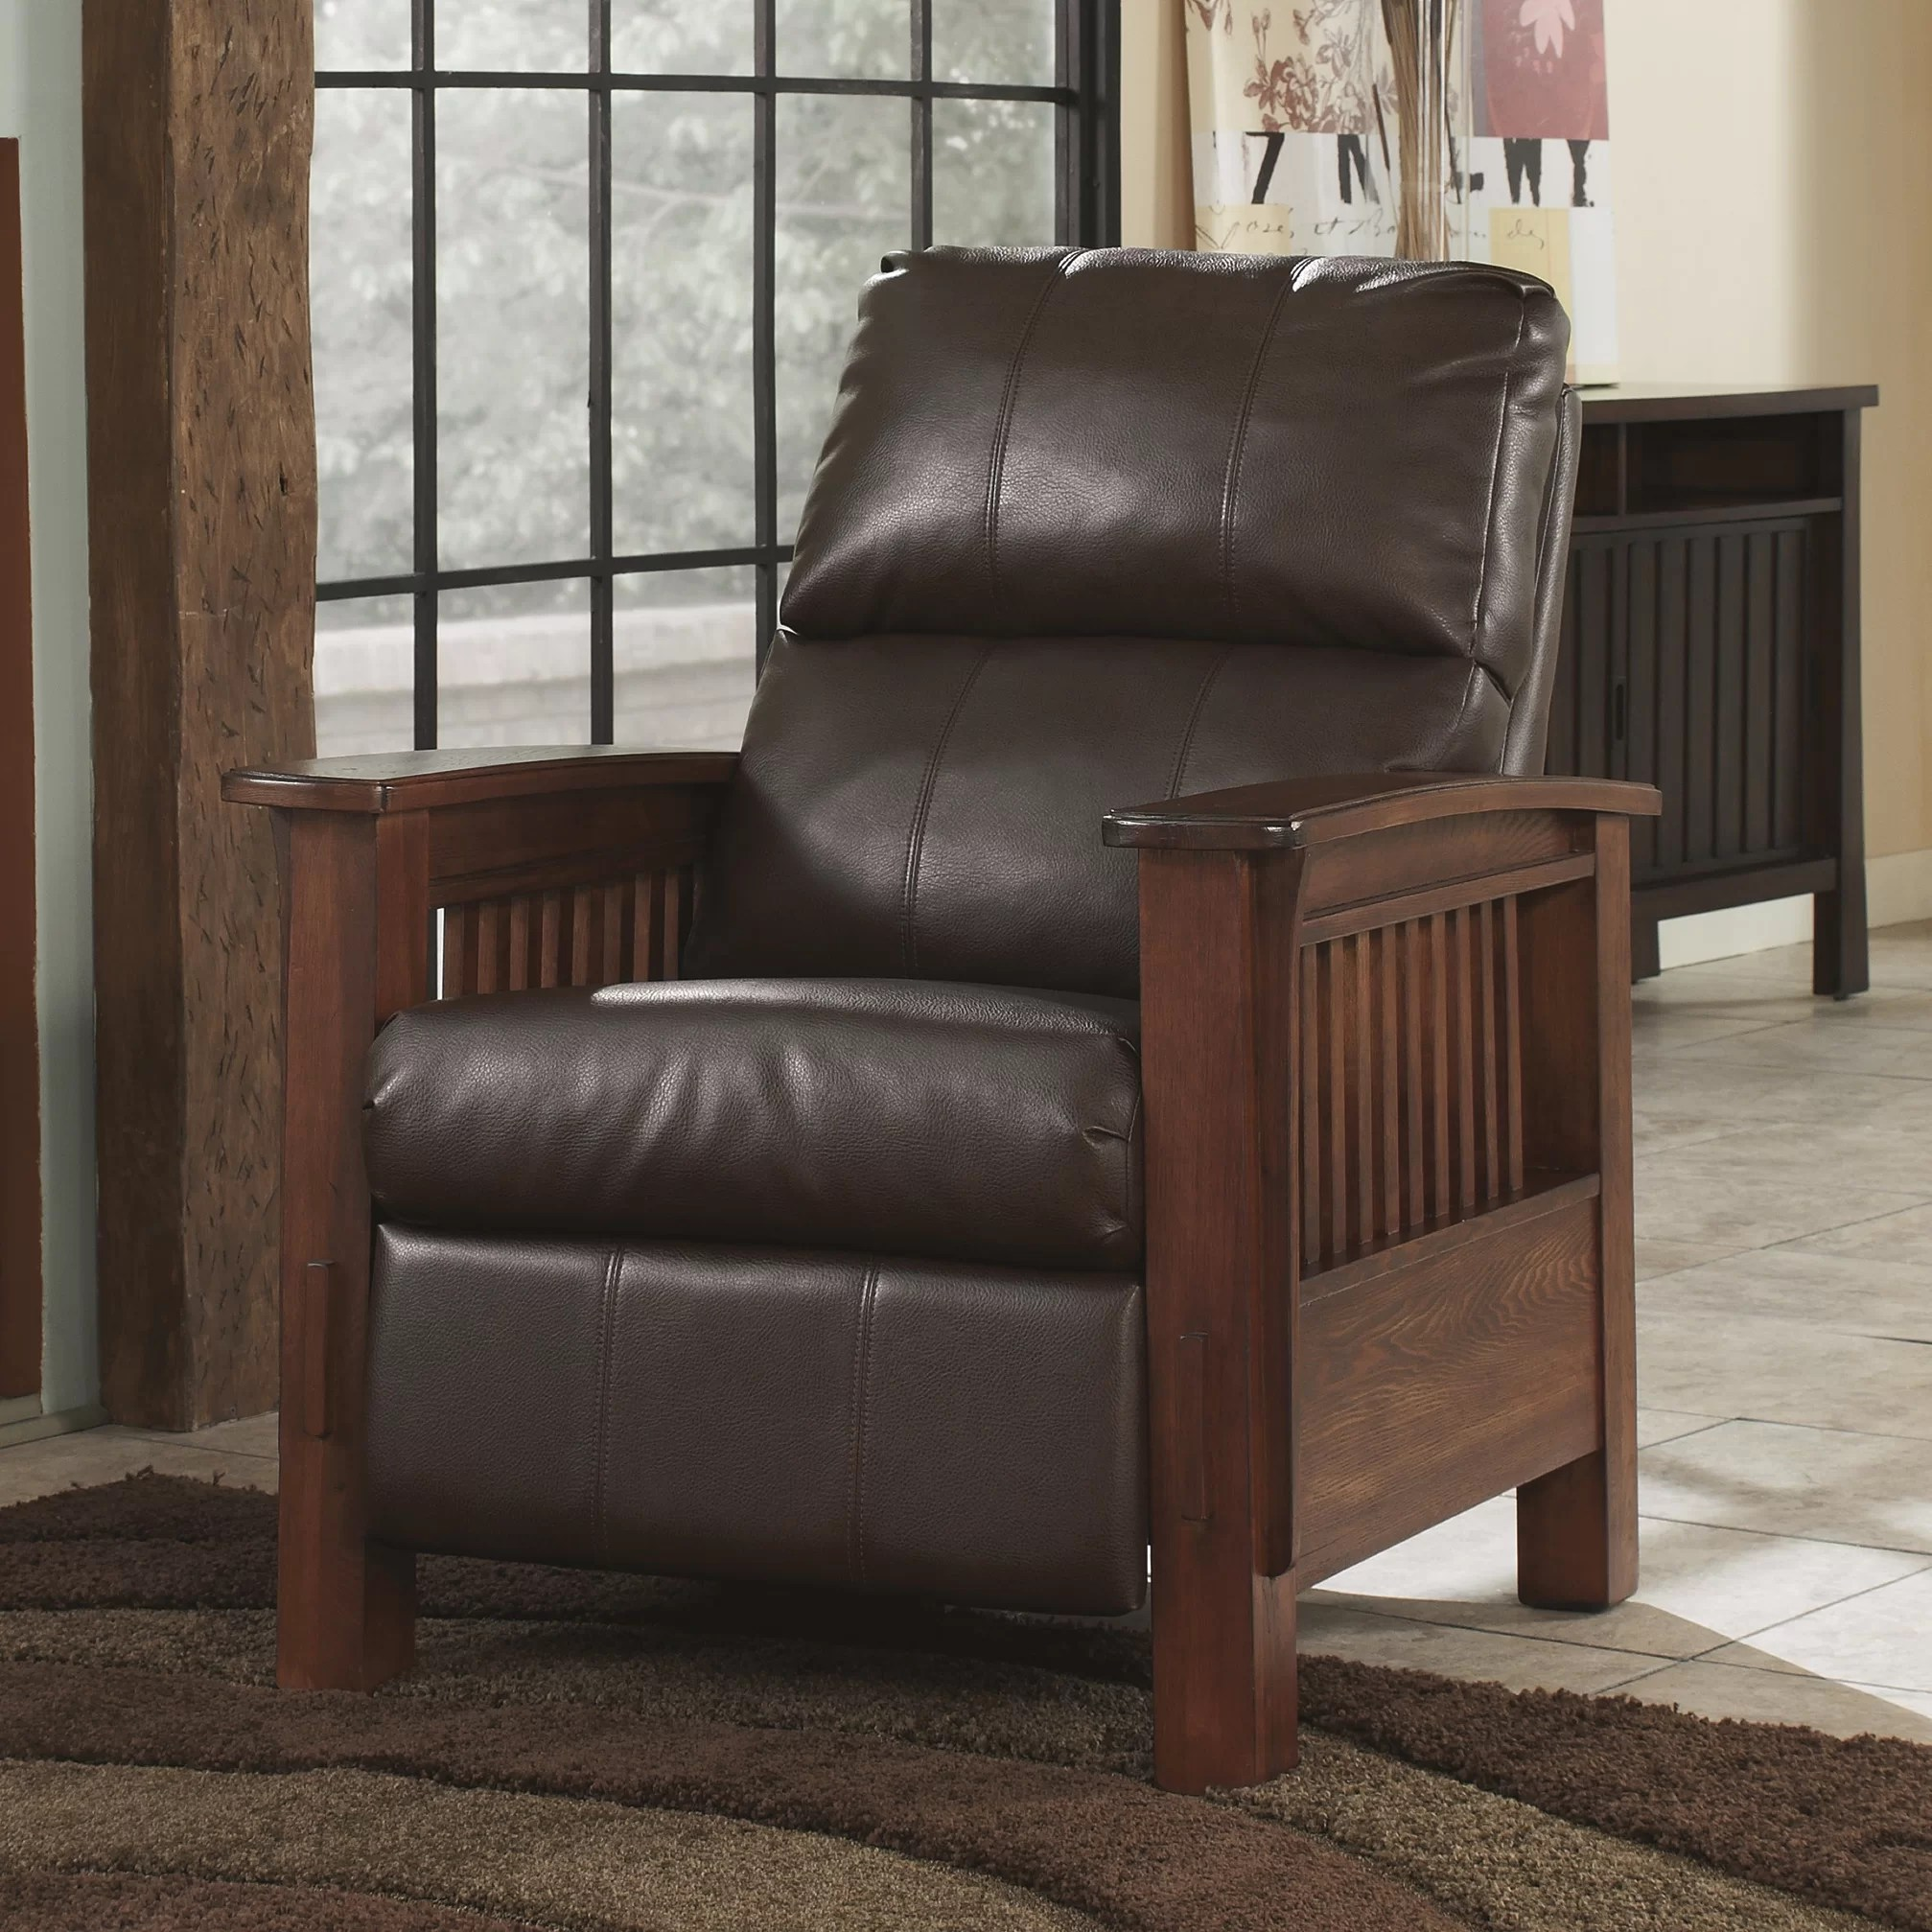 Ashley Recliner Chair Signature Design By Ashley Caro Recliner And Reviews Wayfair